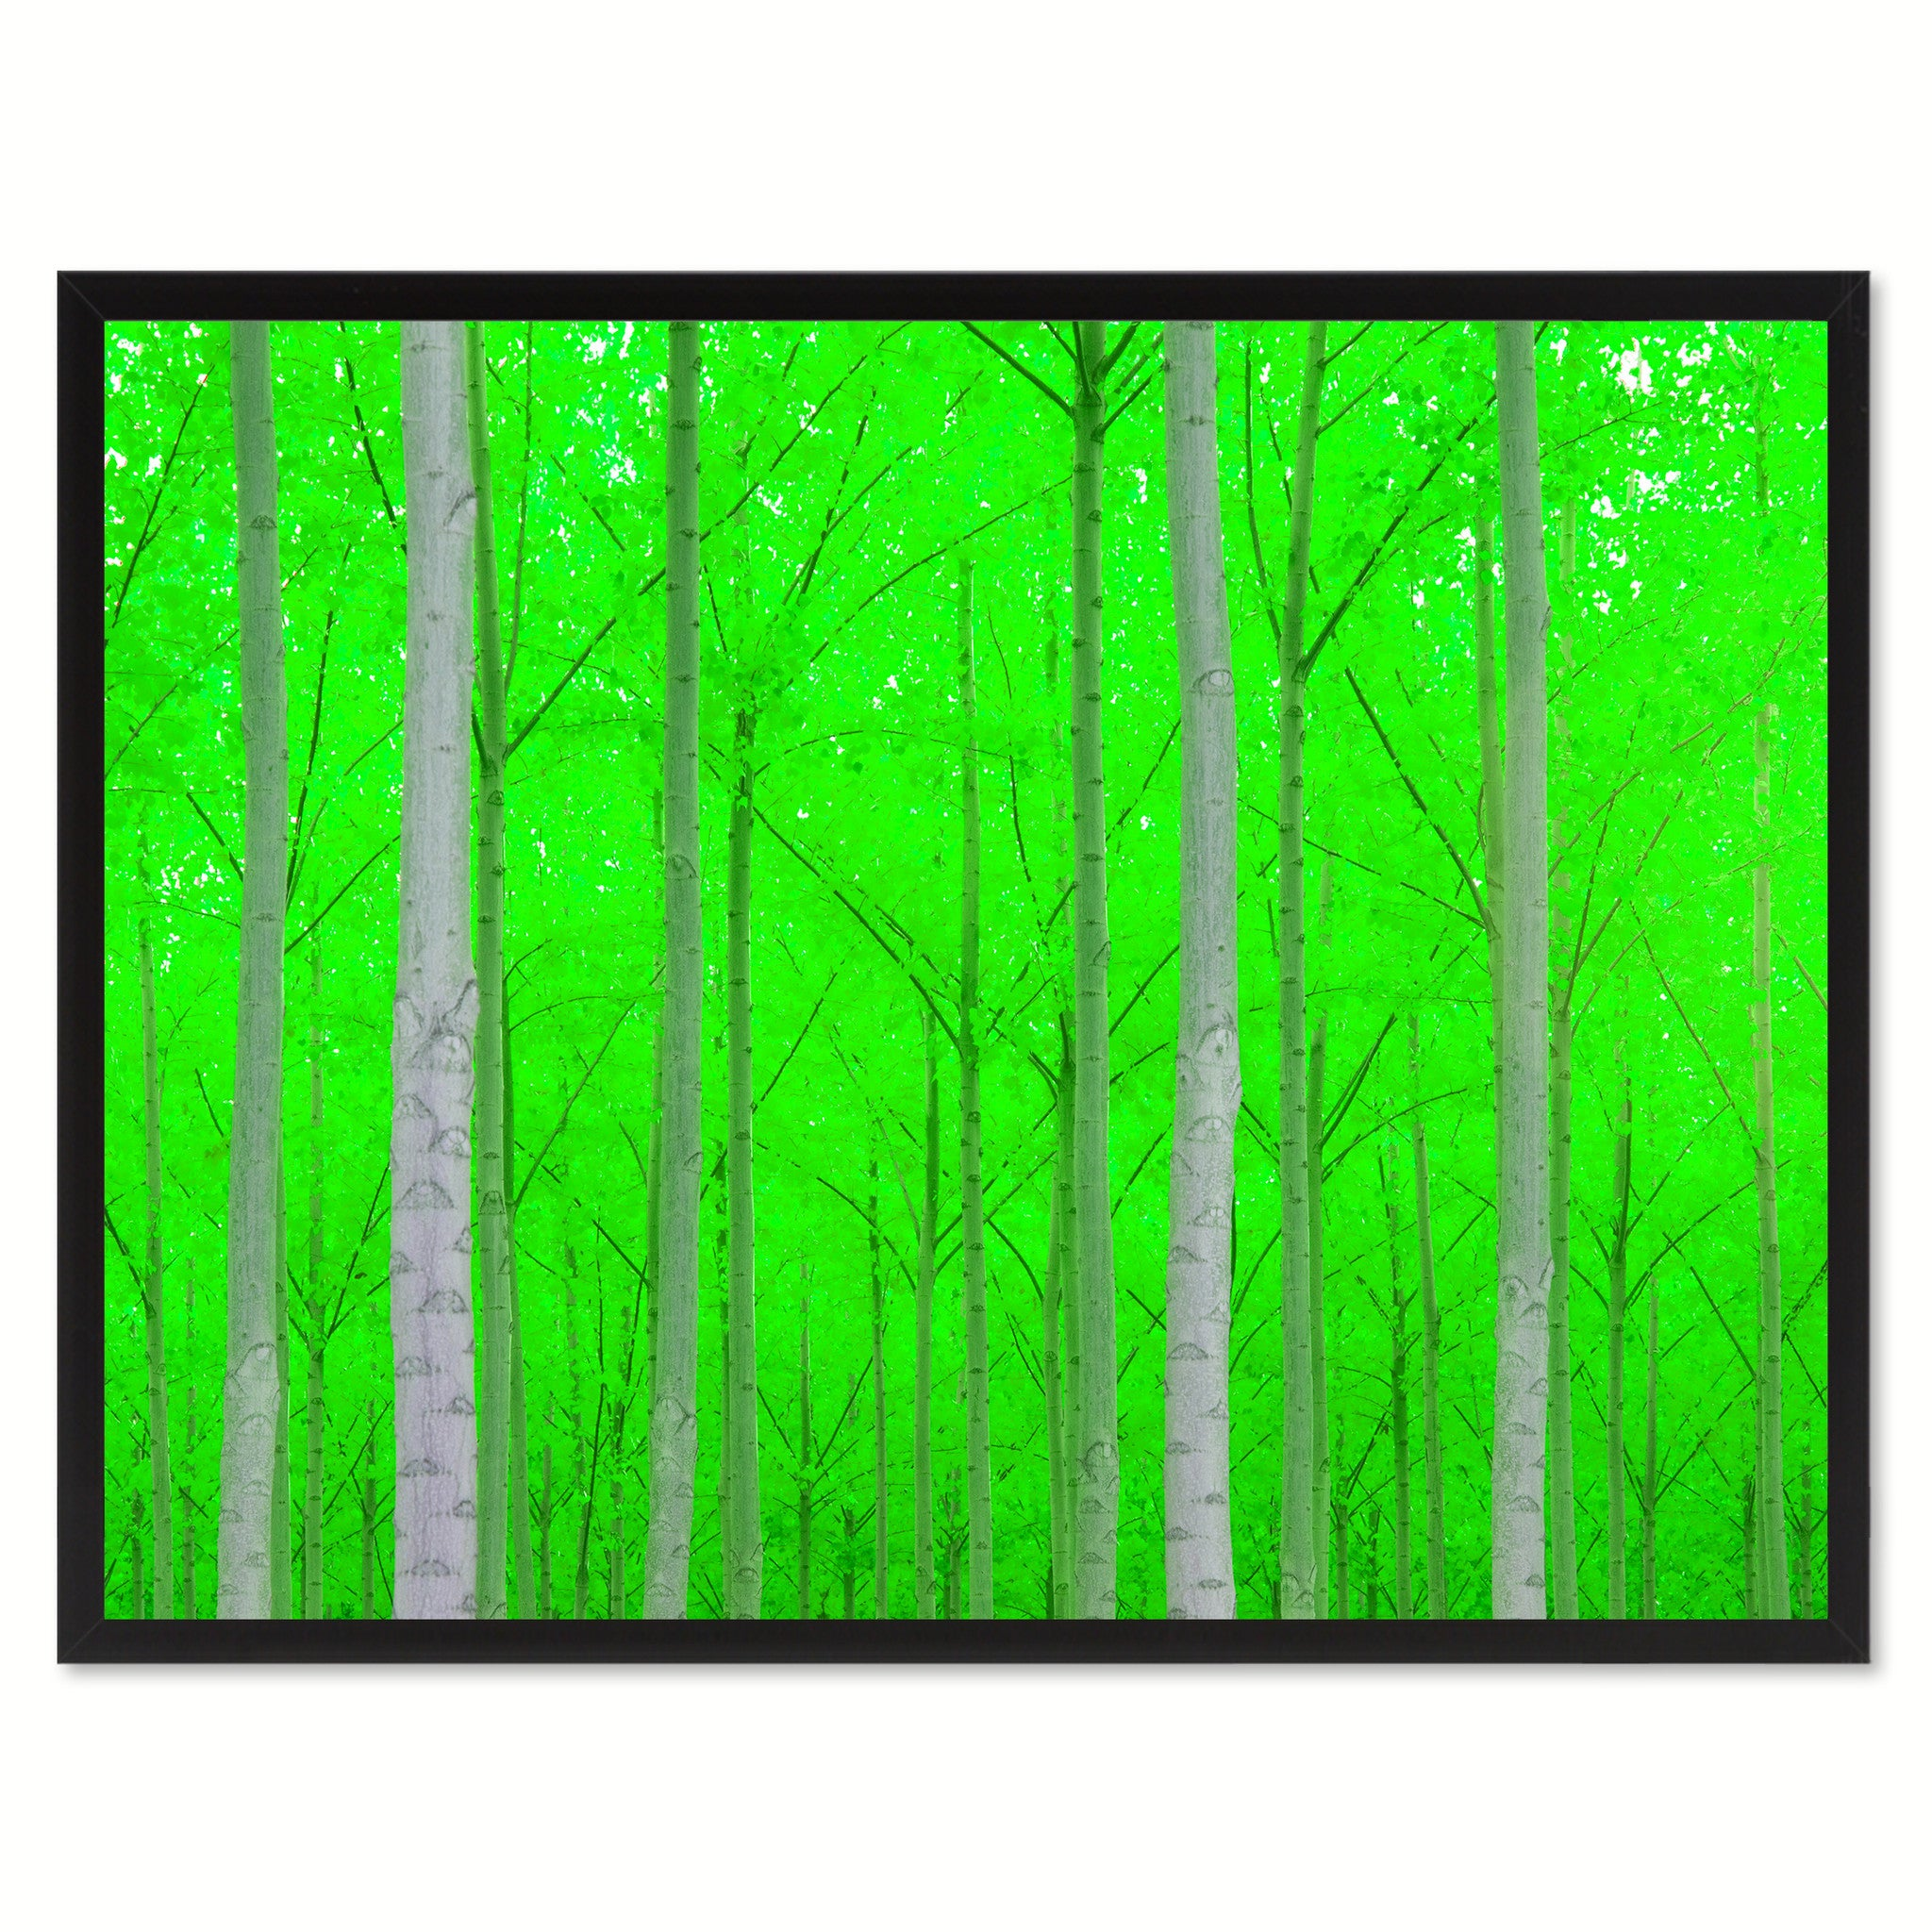 Autumn Tree Green Landscape Photo Canvas Print Pictures Frames Home Décor Wall Art Gifts